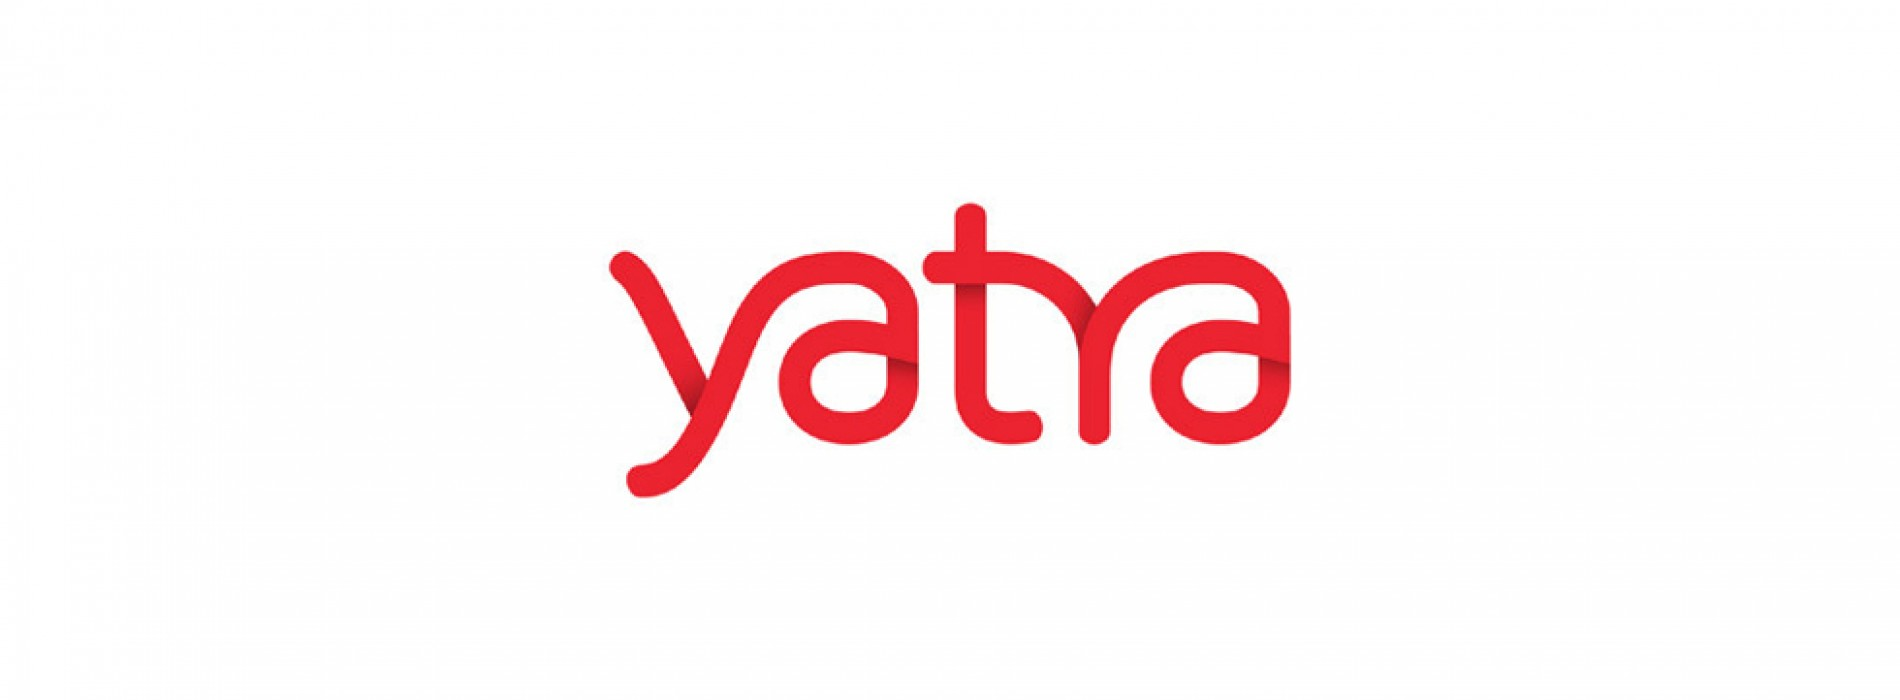 Yatra reveals India's top travel trends for 2017